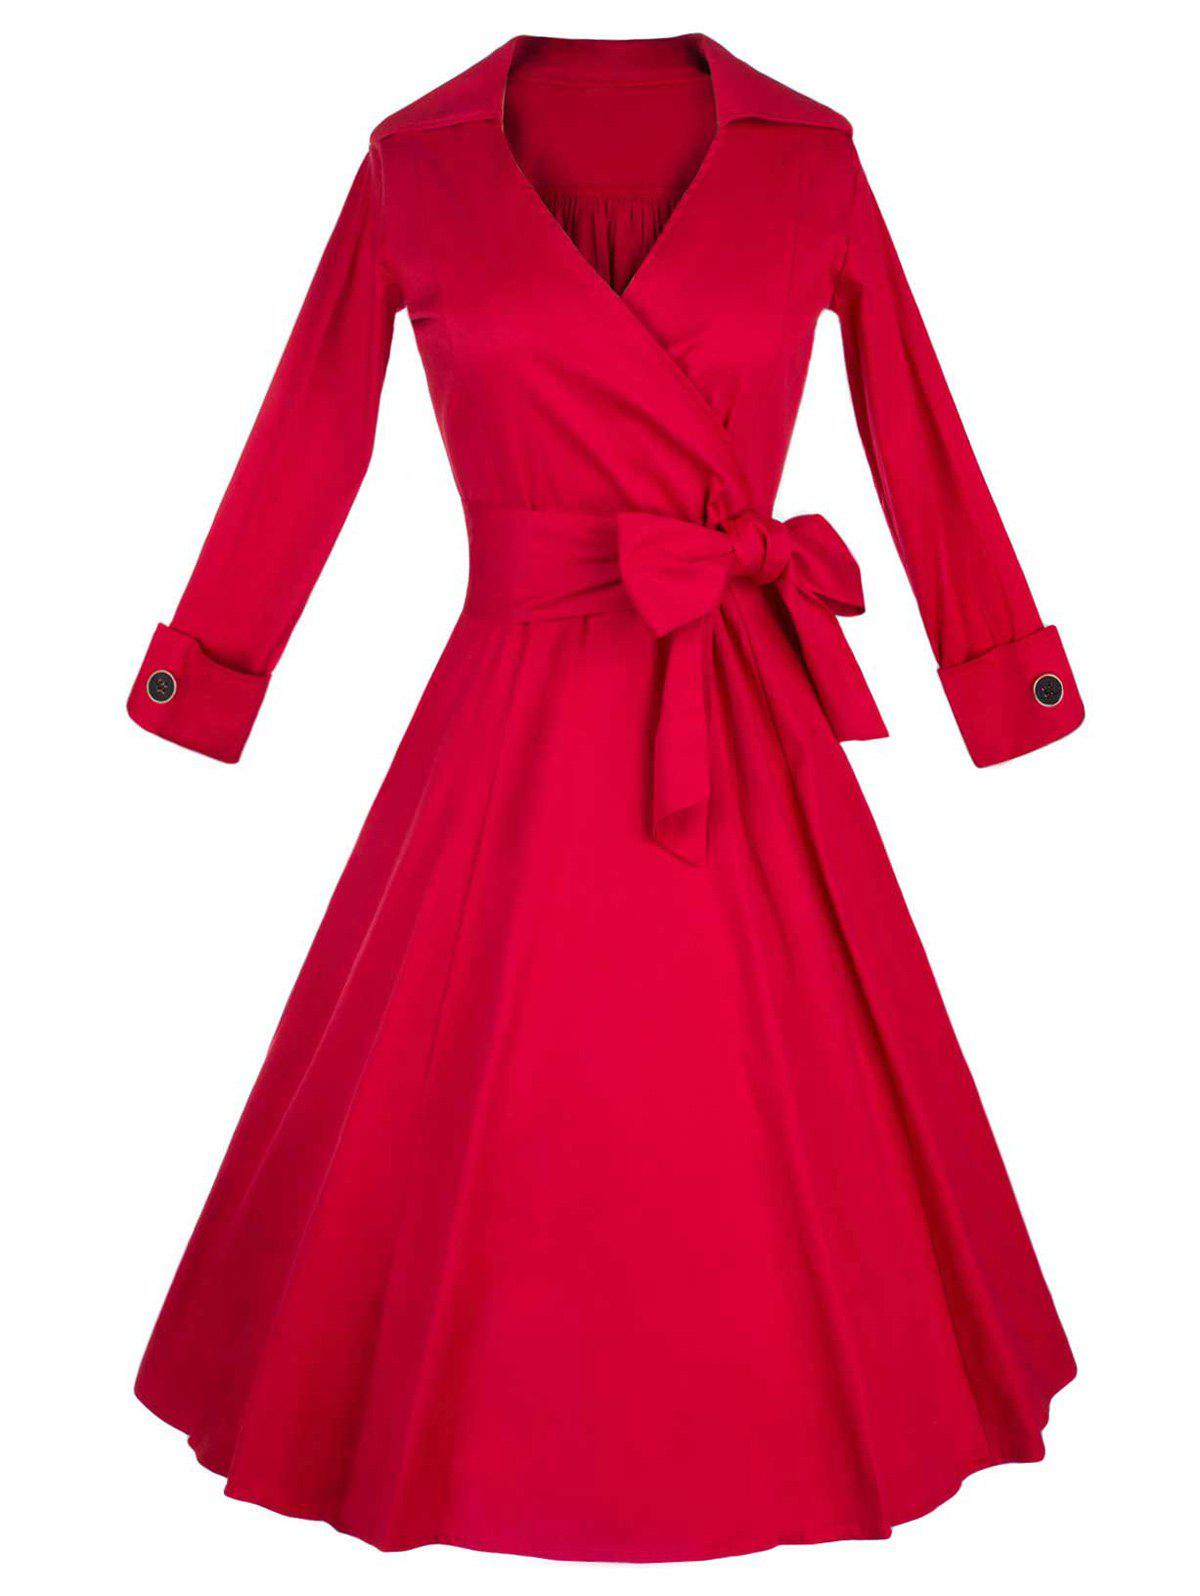 Long Sleeve Wrap Swing Midi Vintage DressWOMEN<br><br>Size: L; Color: RED; Style: Vintage; Material: Cotton Blend; Silhouette: A-Line; Dresses Length: Mid-Calf; Neckline: V-Neck; Sleeve Length: Long Sleeves; Pattern Type: Solid; With Belt: No; Season: Fall,Spring,Winter; Weight: 0.550kg; Package Contents: 1 x Dress;